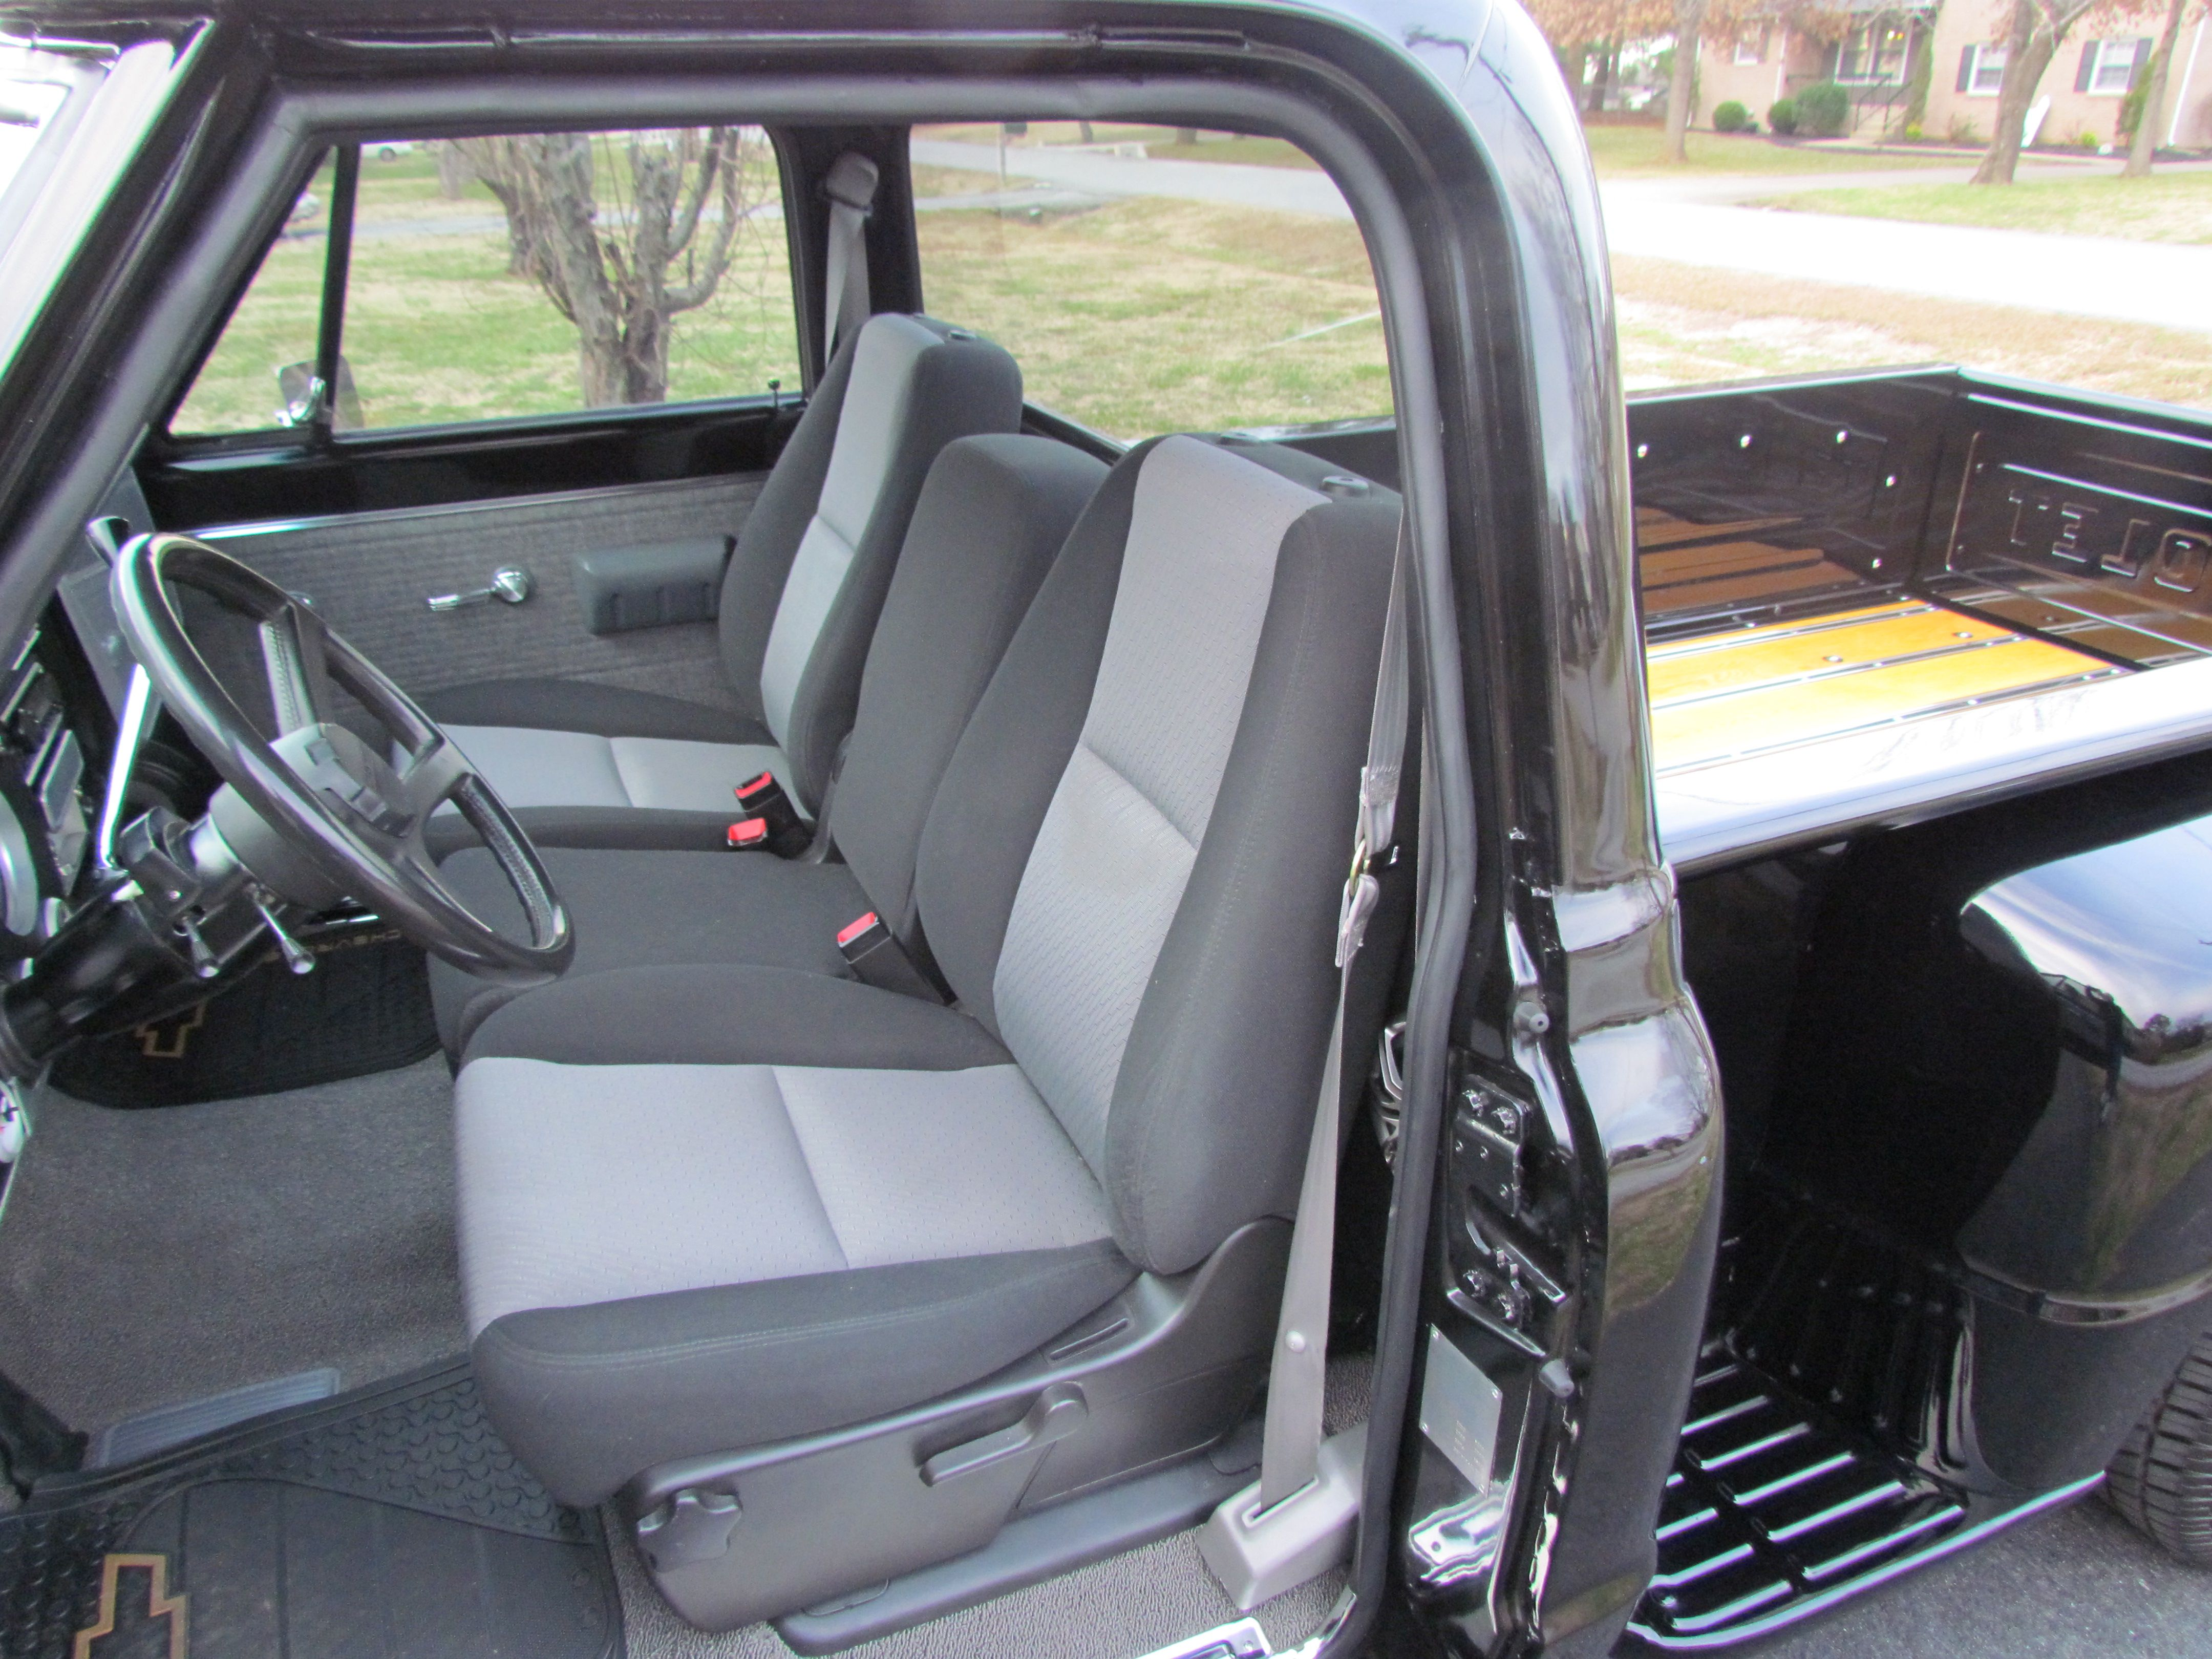 themiracle chevy ideas off parts interior truck pelican volvo removal door panel to diy how take panels biz